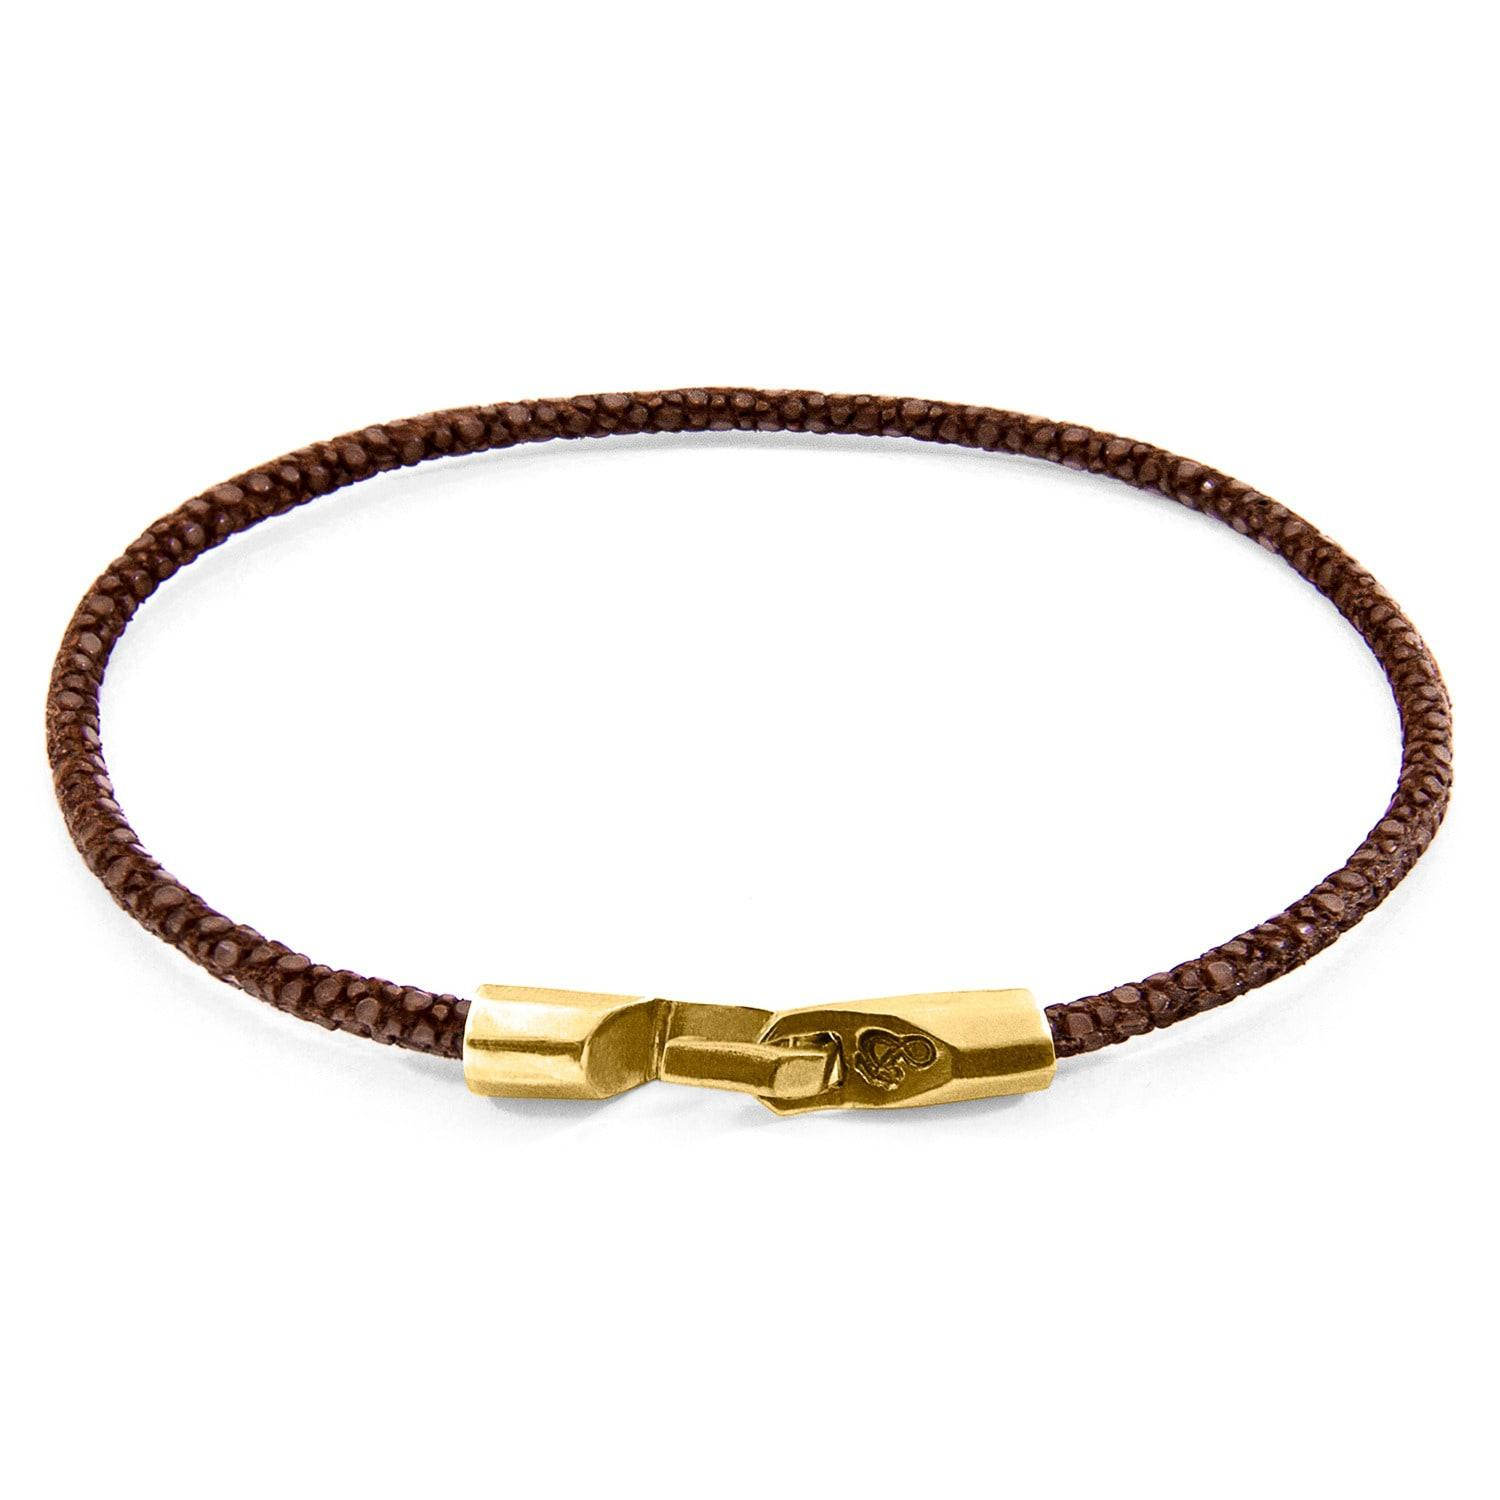 Anchor & Crew Liverpool 9kt Yellow Gold & Stingray Leather Bracelet - Shadow Grey eCkSsPZ